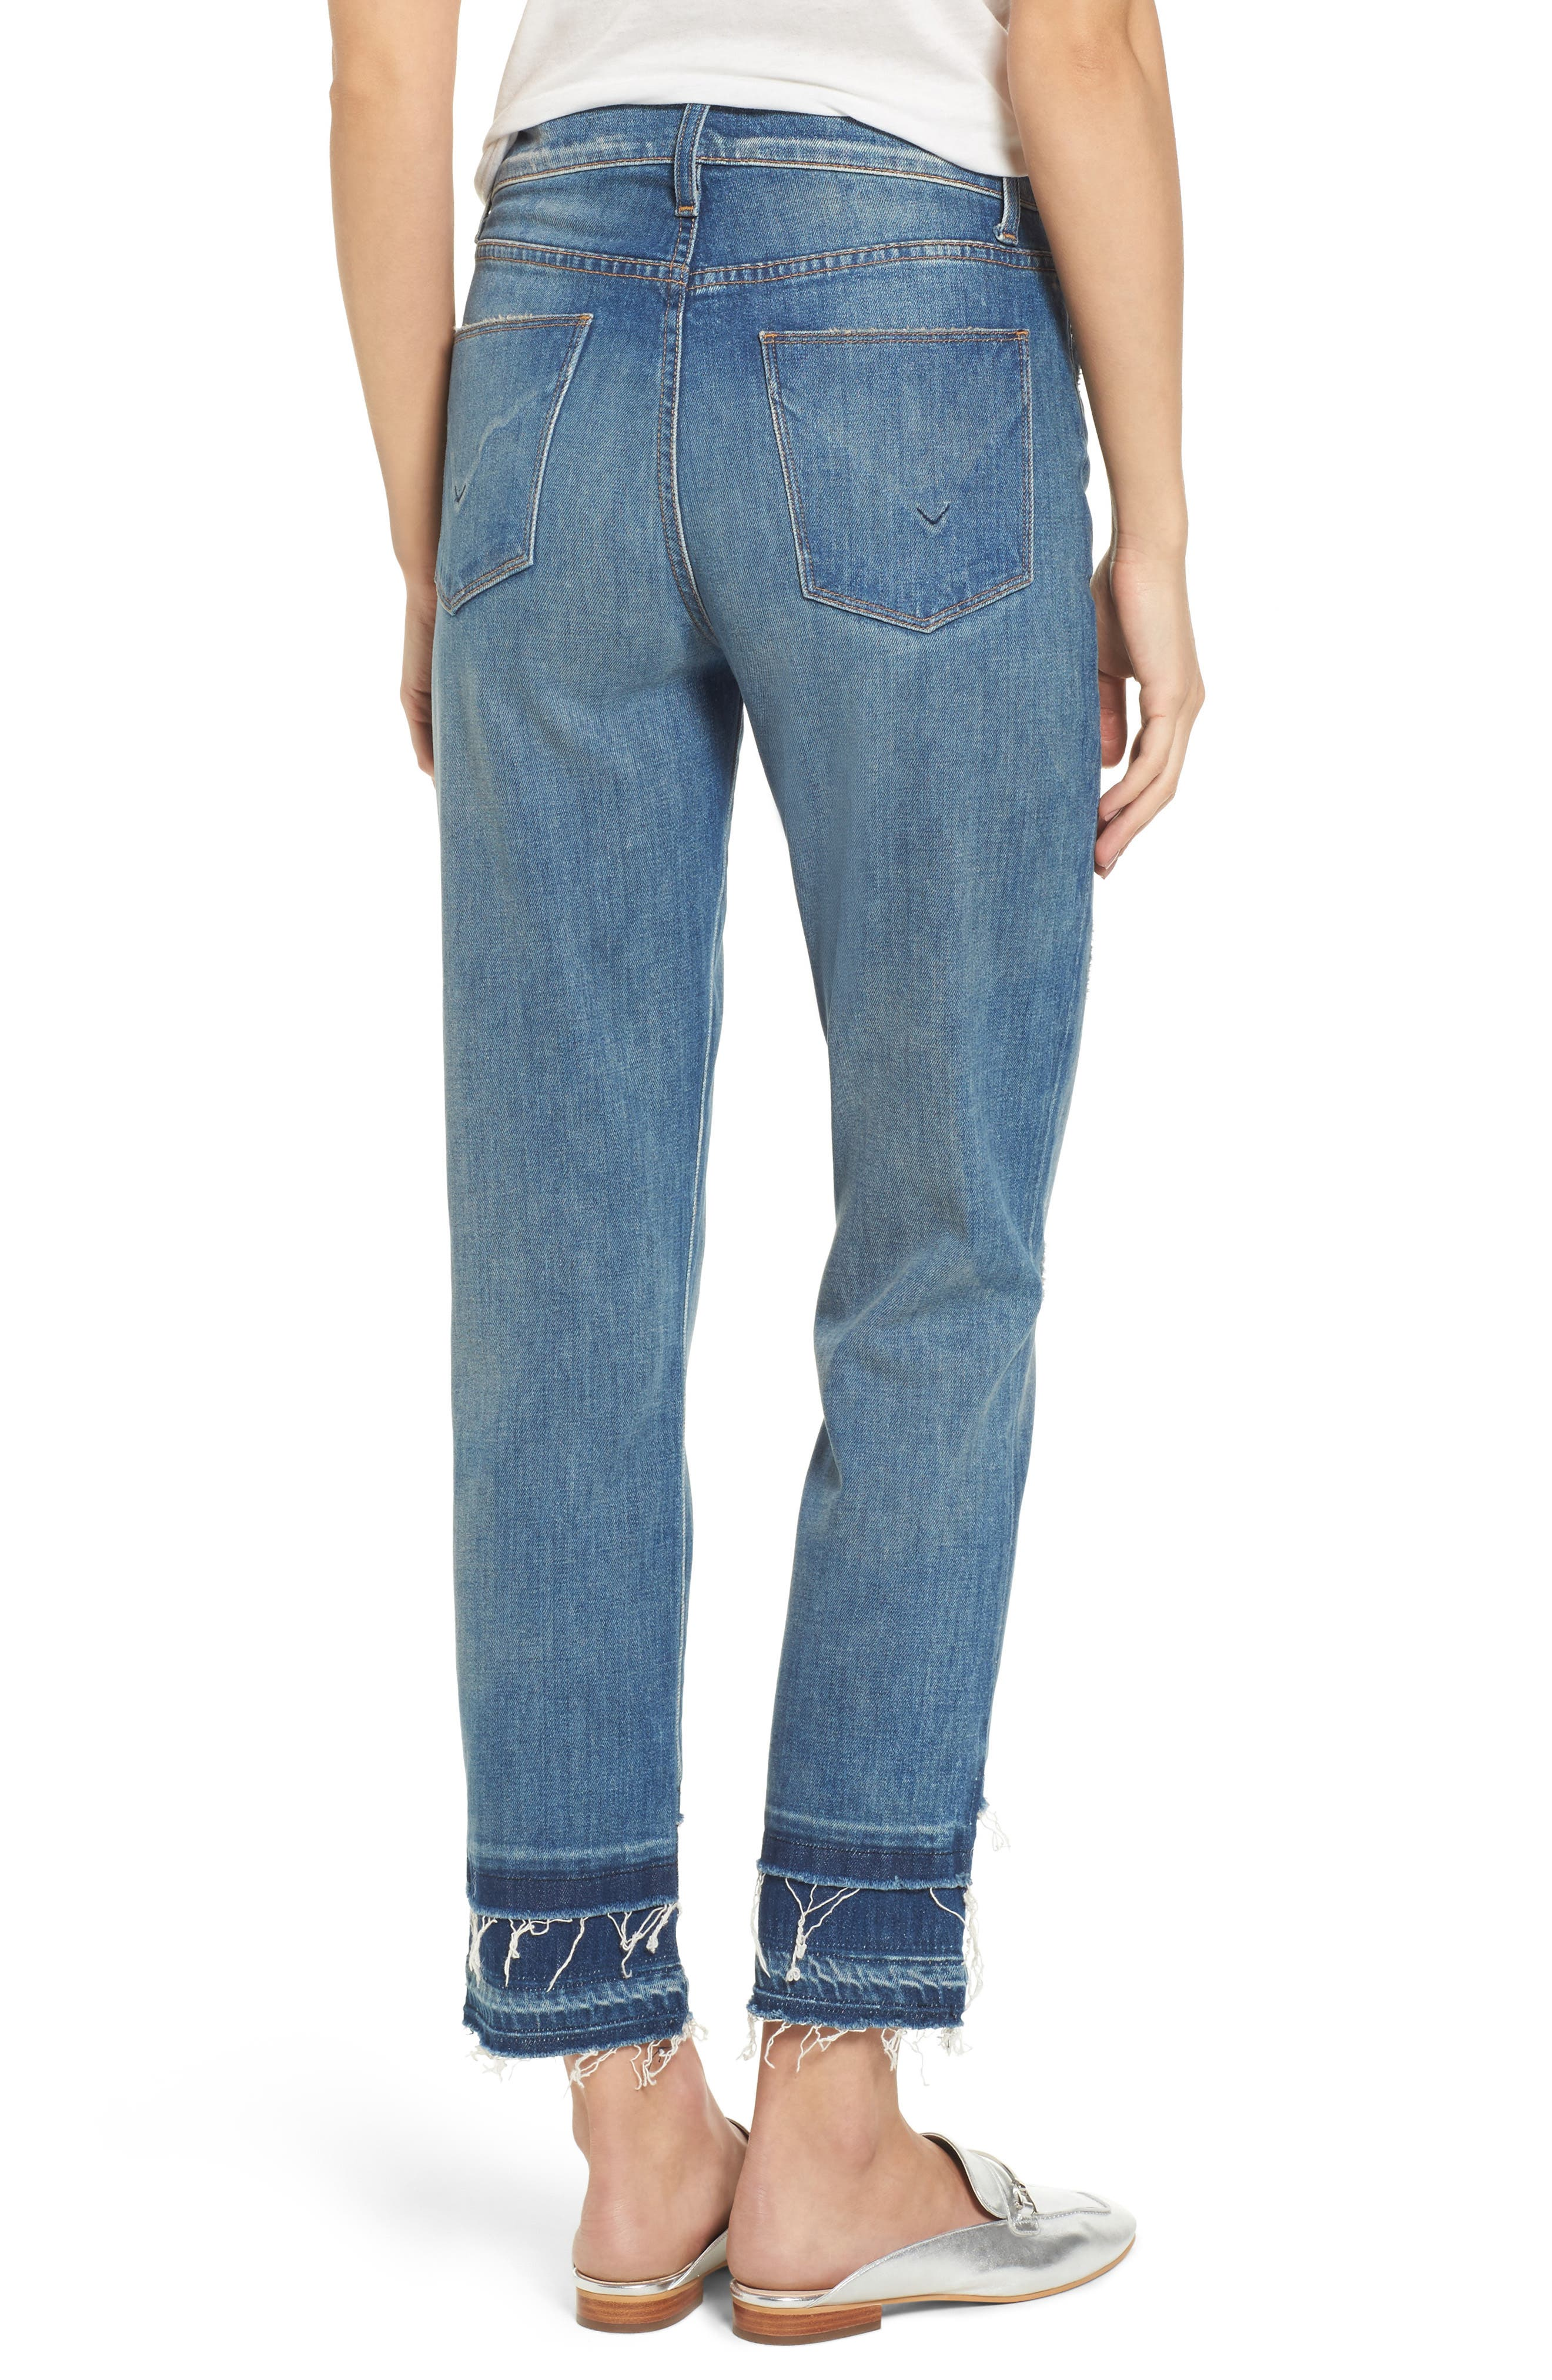 Zoeey High Waist Crop Straight Leg Jeans,                             Alternate thumbnail 2, color,                             Social Grace